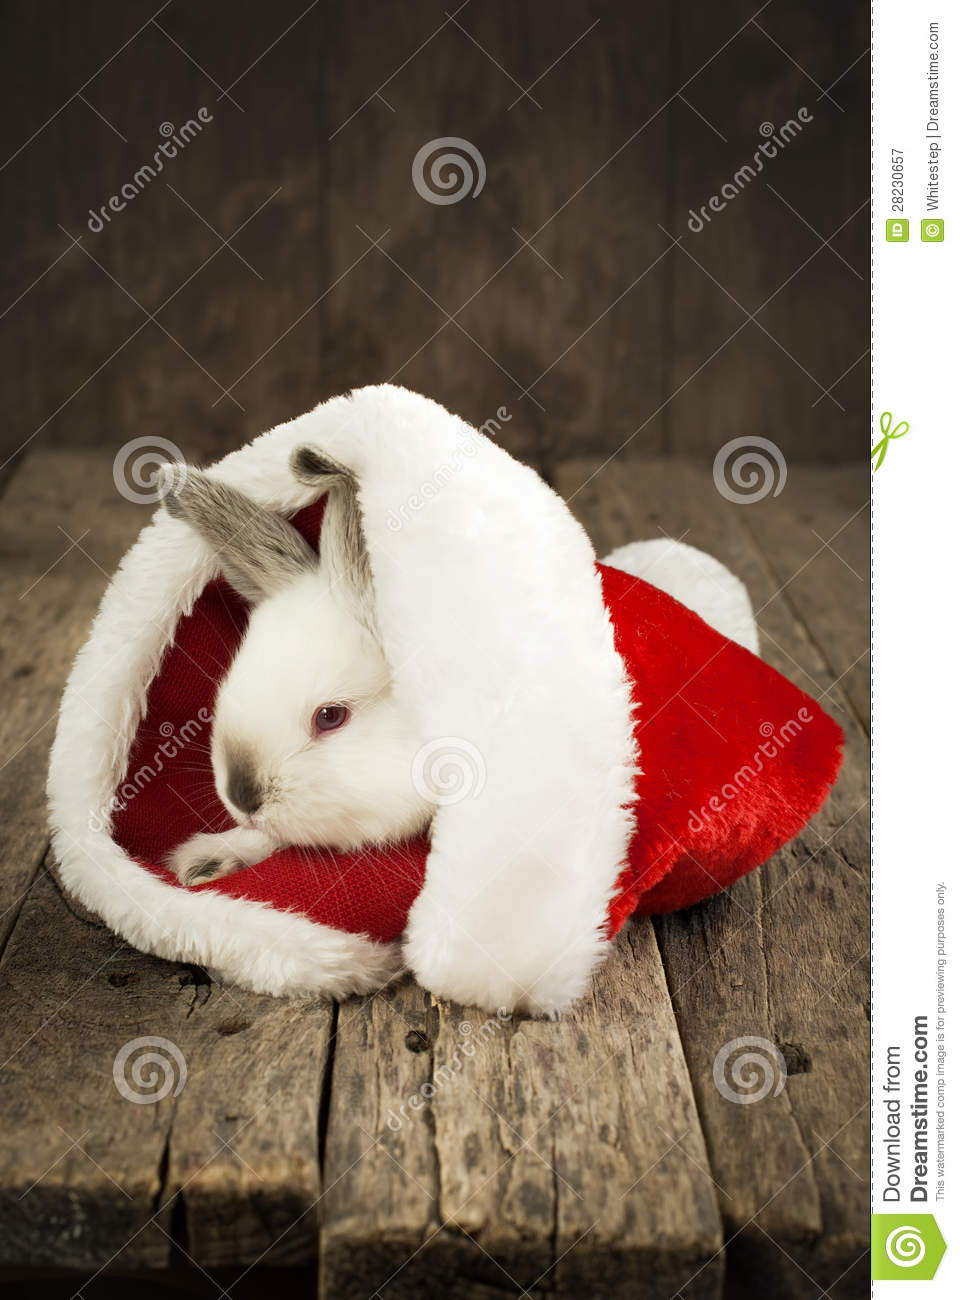 Christmas Card With White Rabbit On Wooden Background